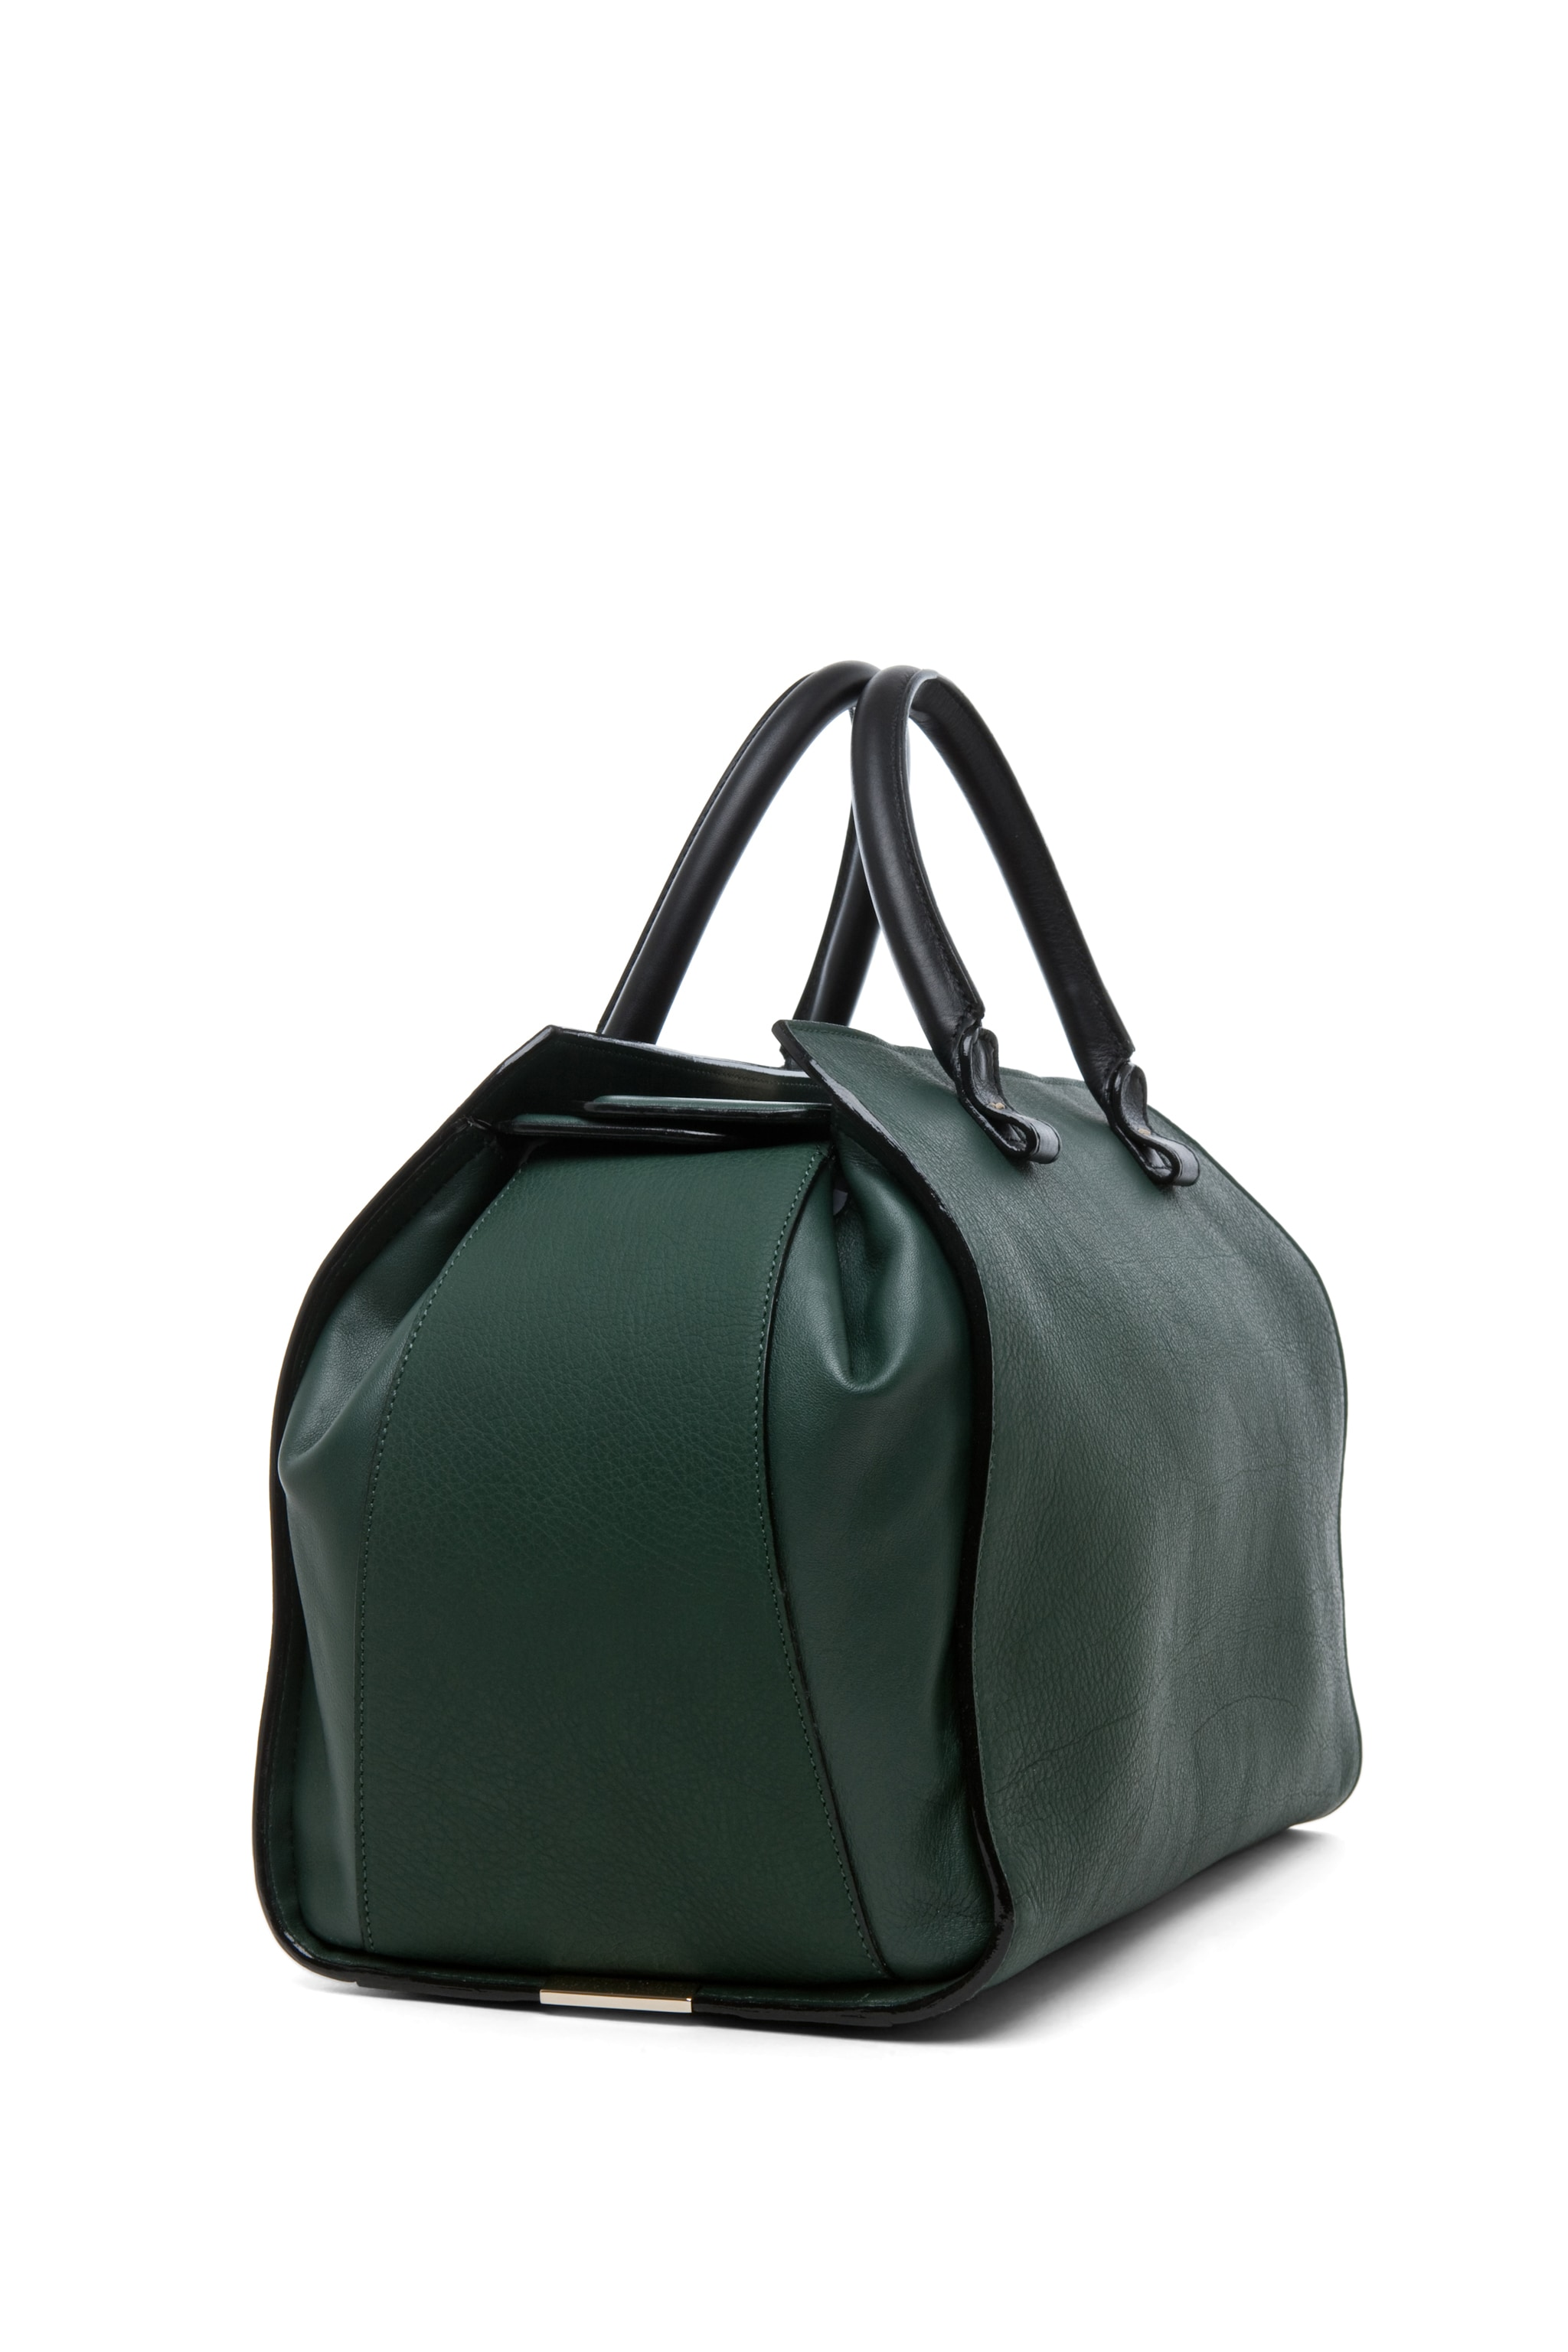 Image 3 of Victoria Beckham The Soft Victoria Bag in Forest Green